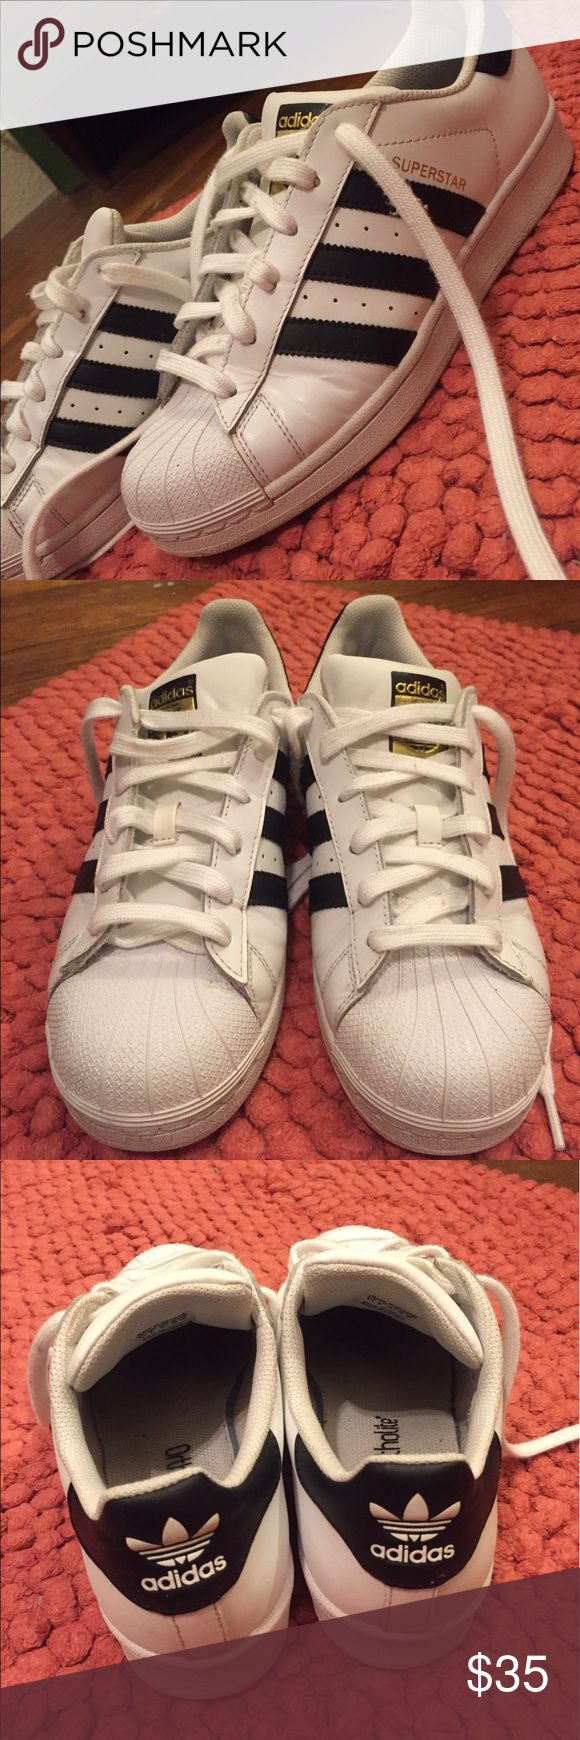 Adidas Superstars Women's size 8 (bought in boy's size 6 1/2) adidas Shoes Sneakers